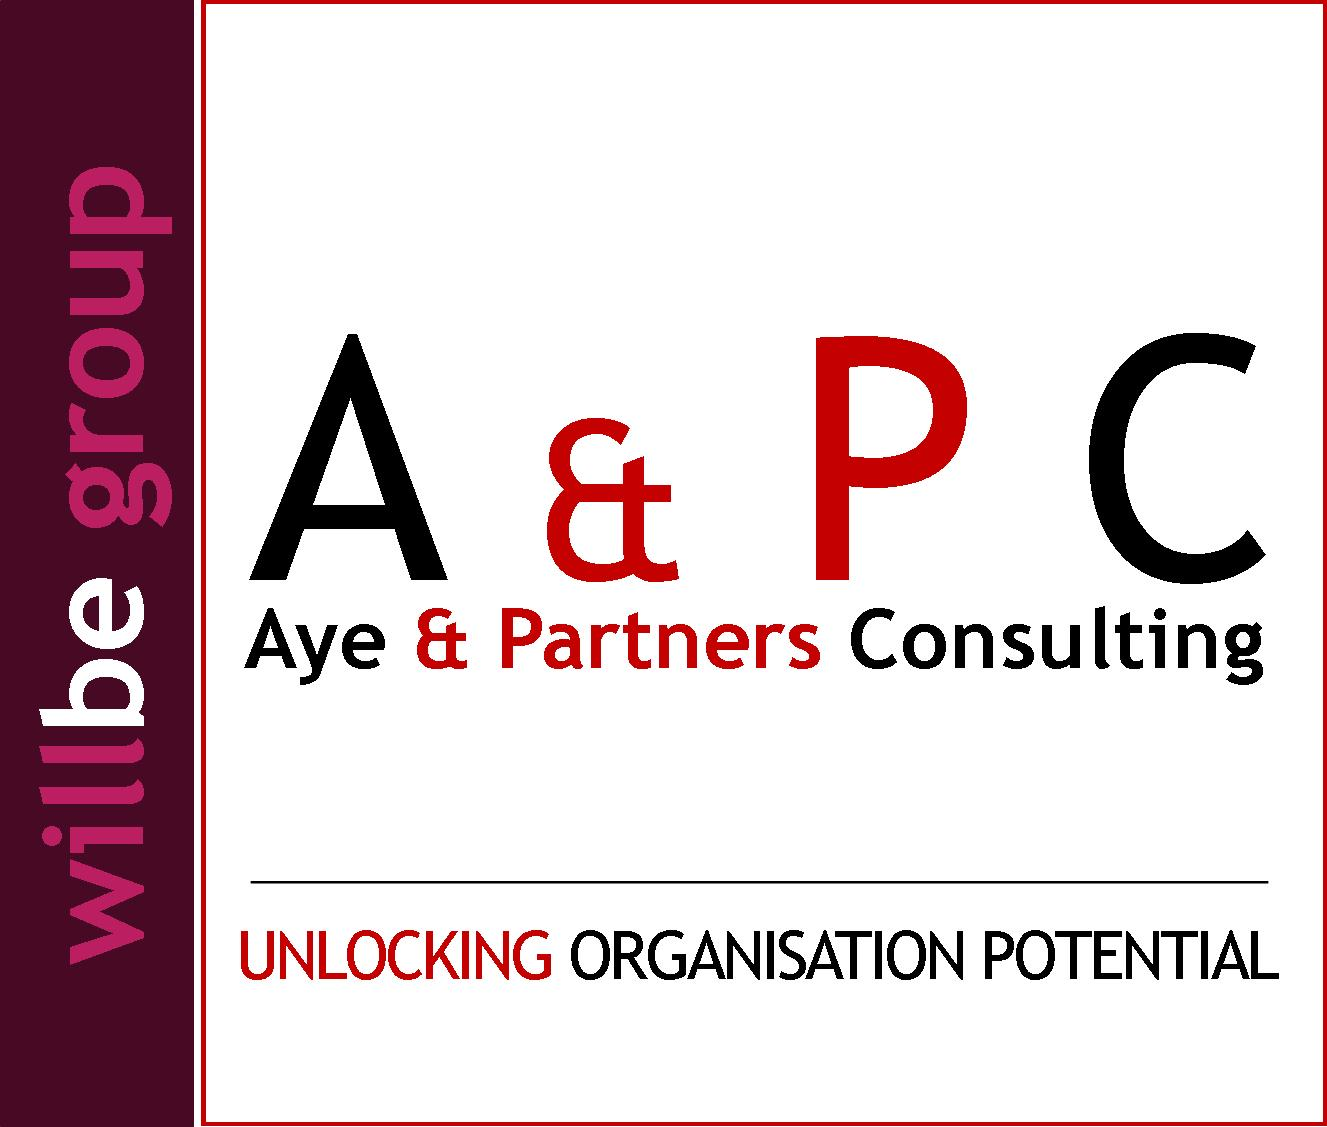 Aye & Partners Consulting